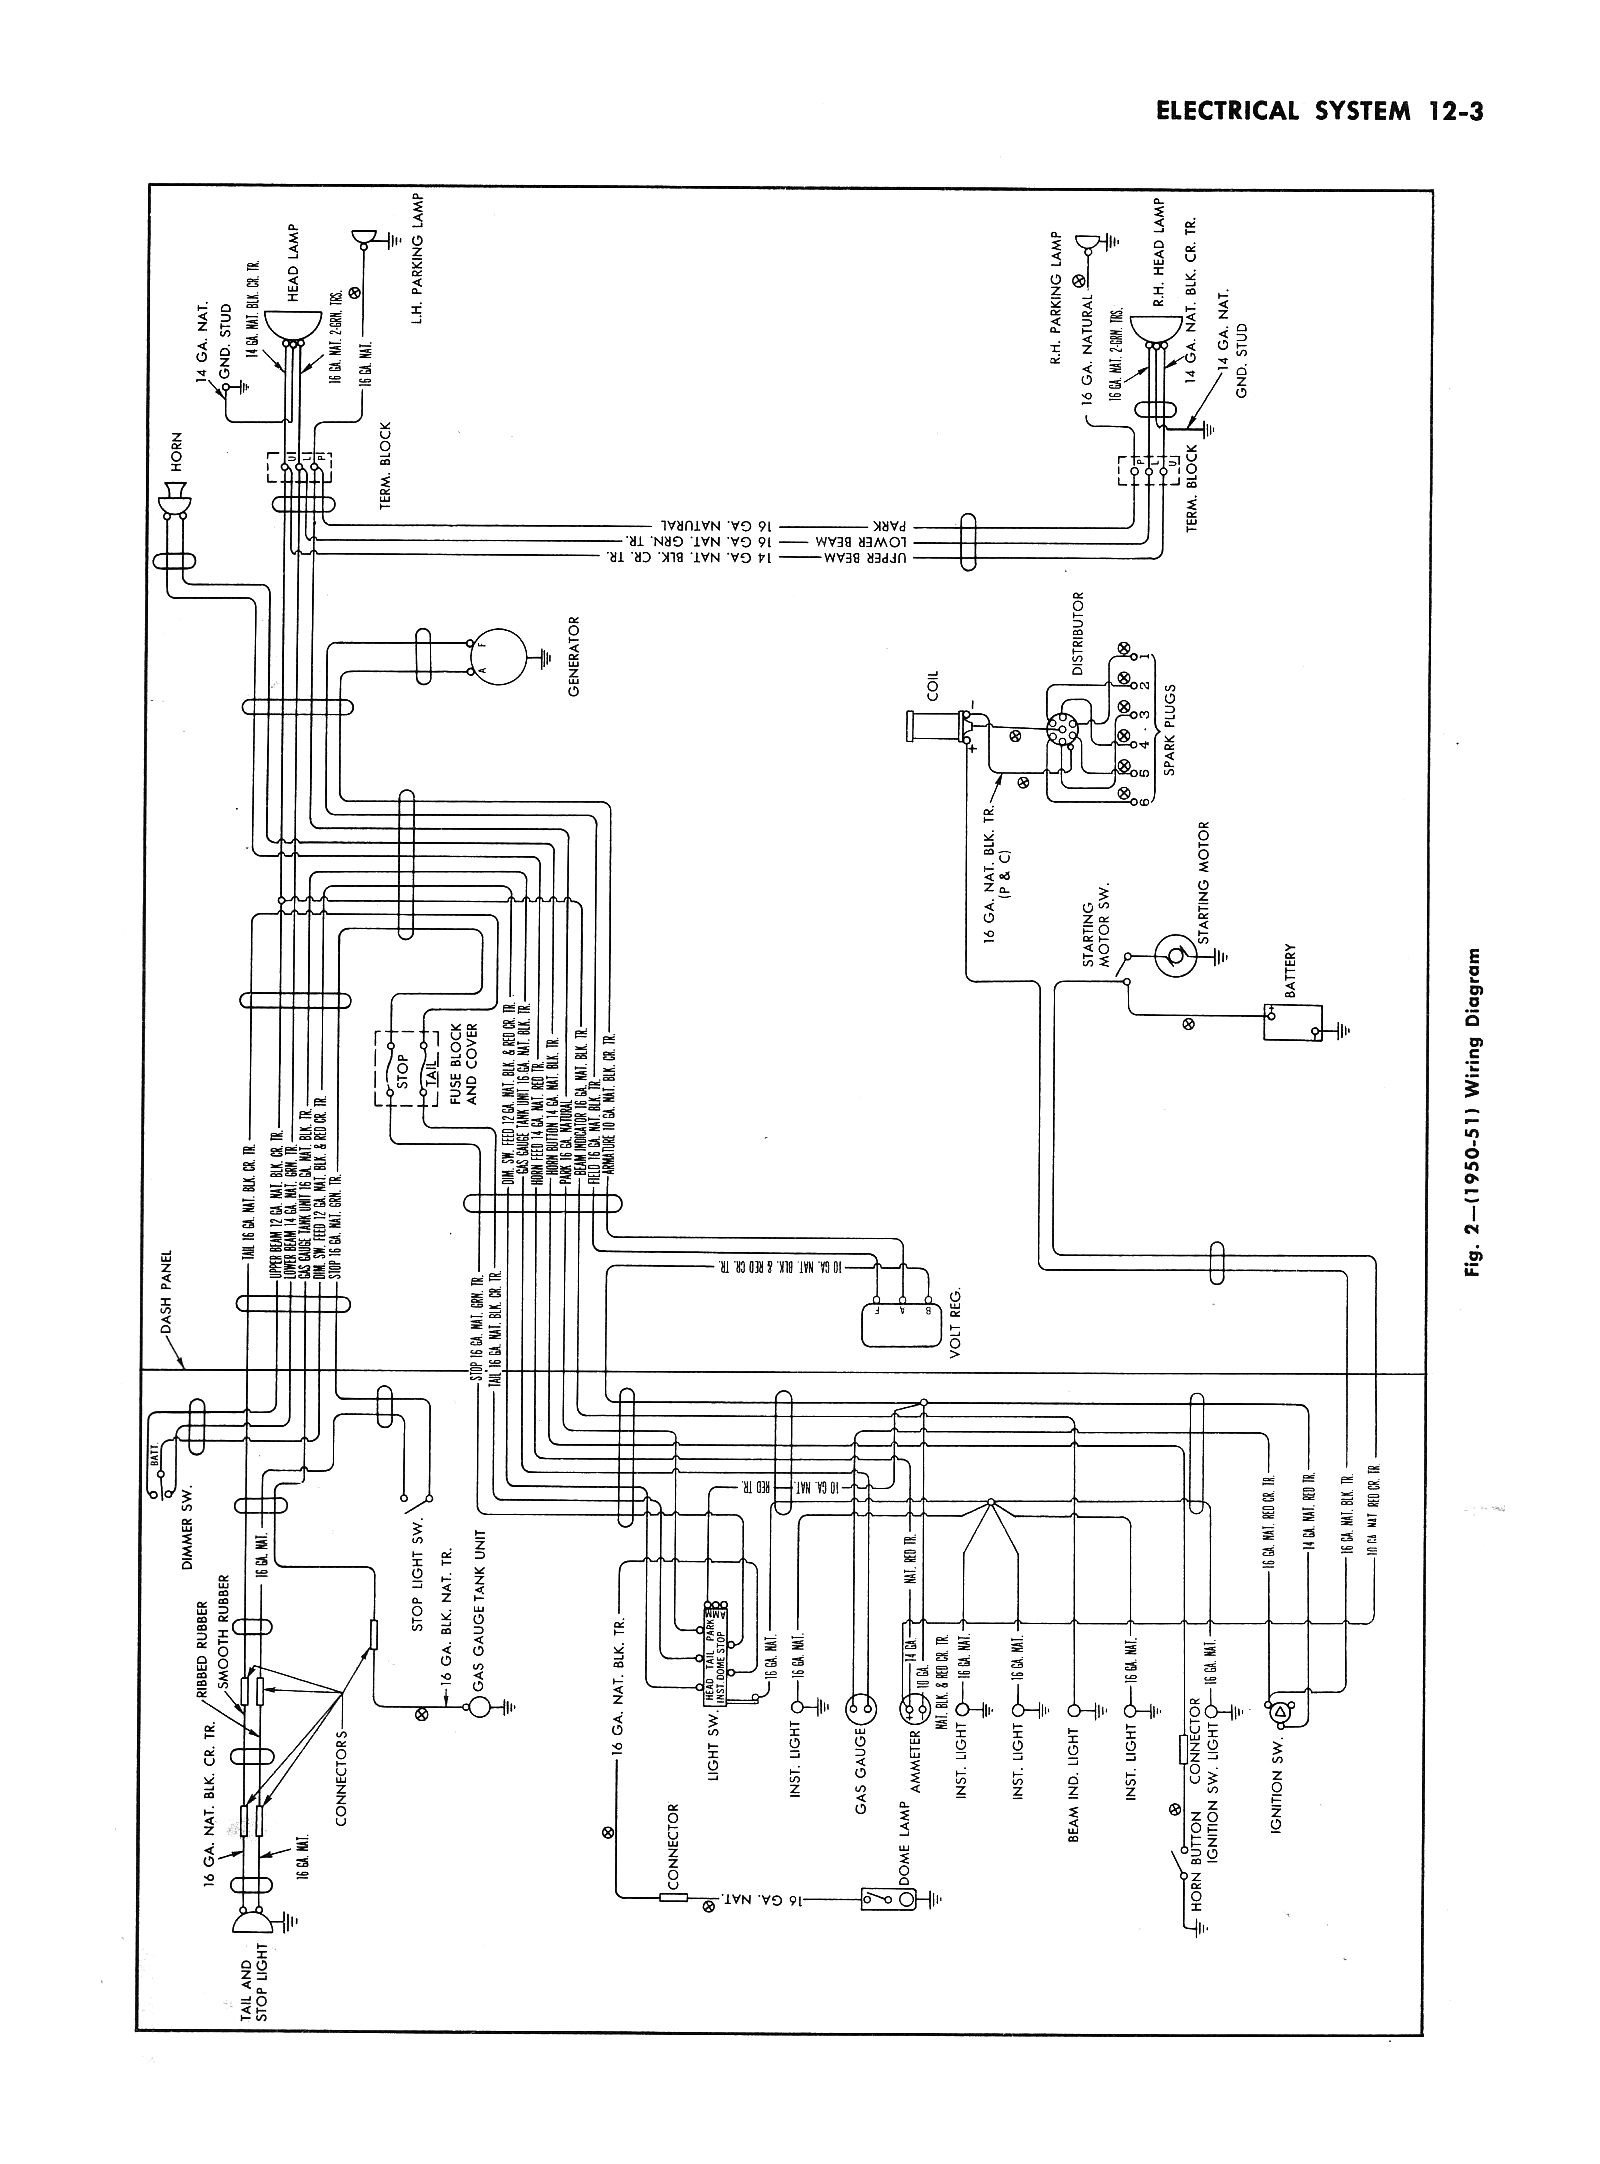 car electrical wiring diagrams with Wiring on Wiring Diagram For Electric Chain Hoist in addition Wiring Diagram Online as well RIMS Plumbing Schematic together with 2013 Peterbilt 379 Wiring Diagram in addition P 0900c152801ce6dd.